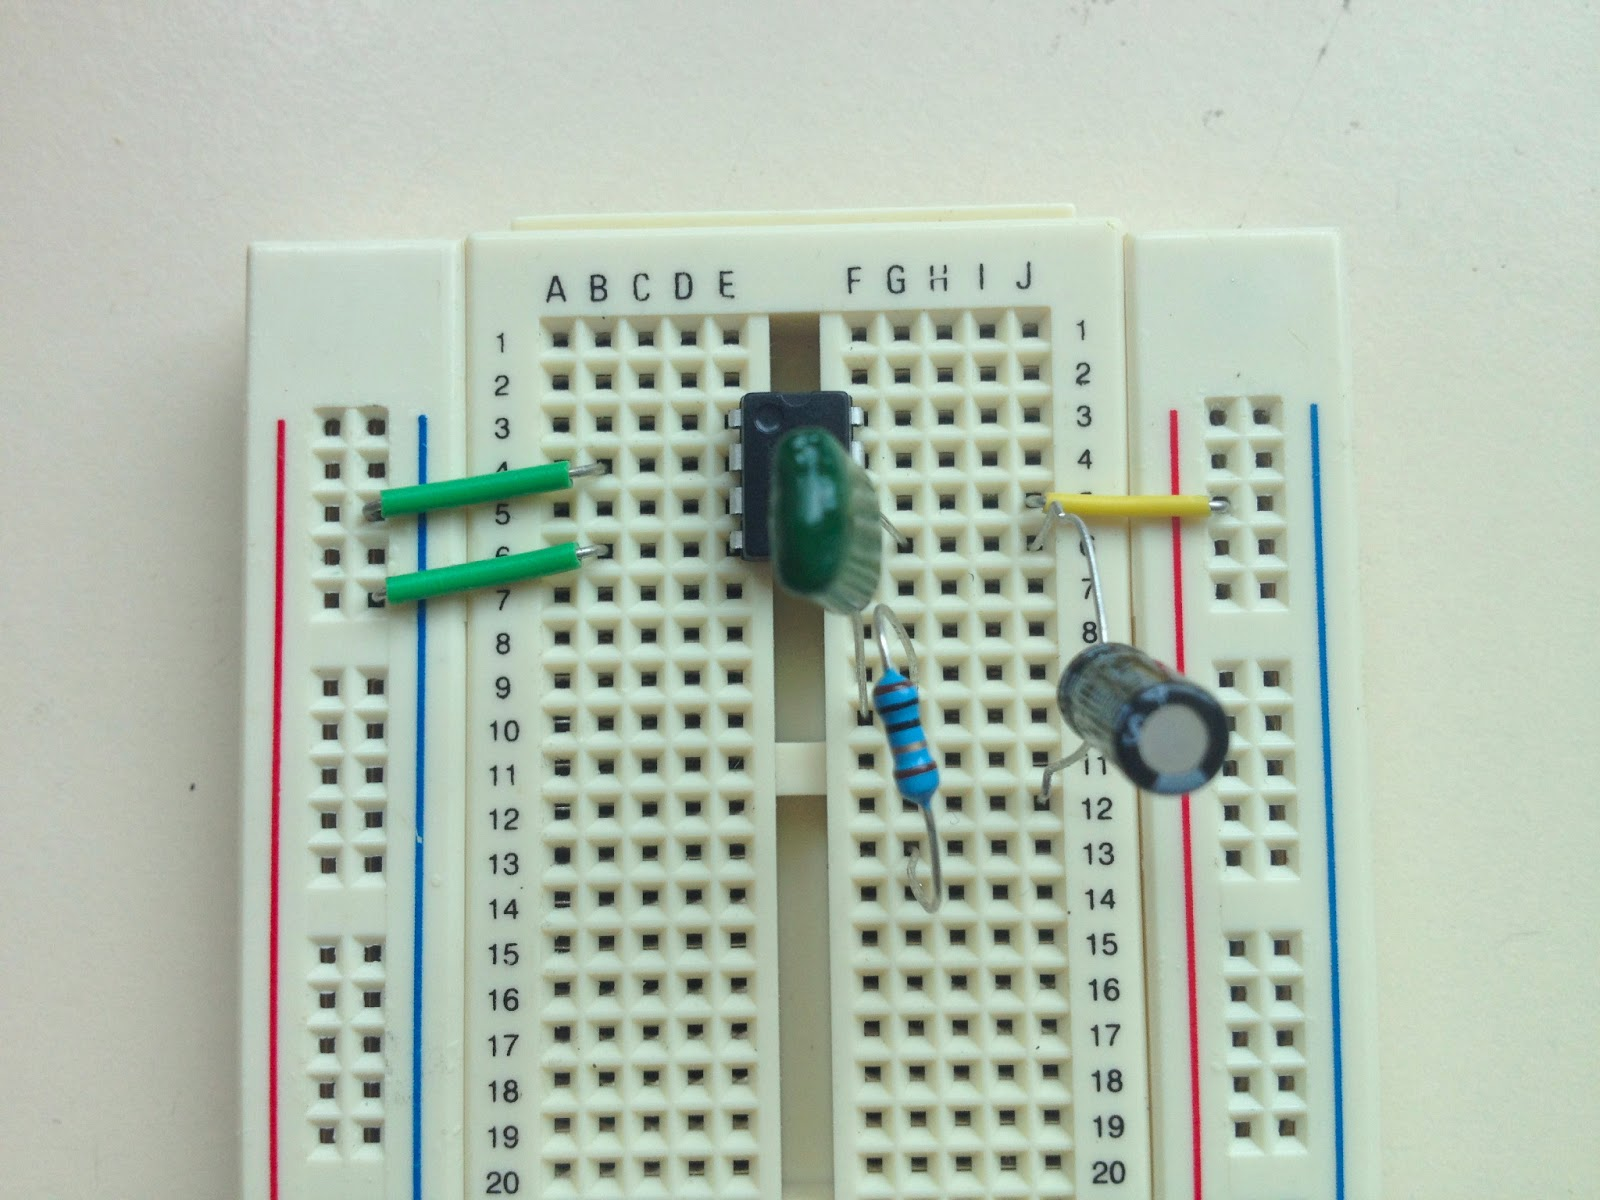 Little Scale Breadboard Basics 2 From Schematic To Capacitors And Resistors A Circuitbreadboard Wires Batteries Connect The 10r Resistor Unused Leg Of Green 47nf Capacitor Other Should Go New Row